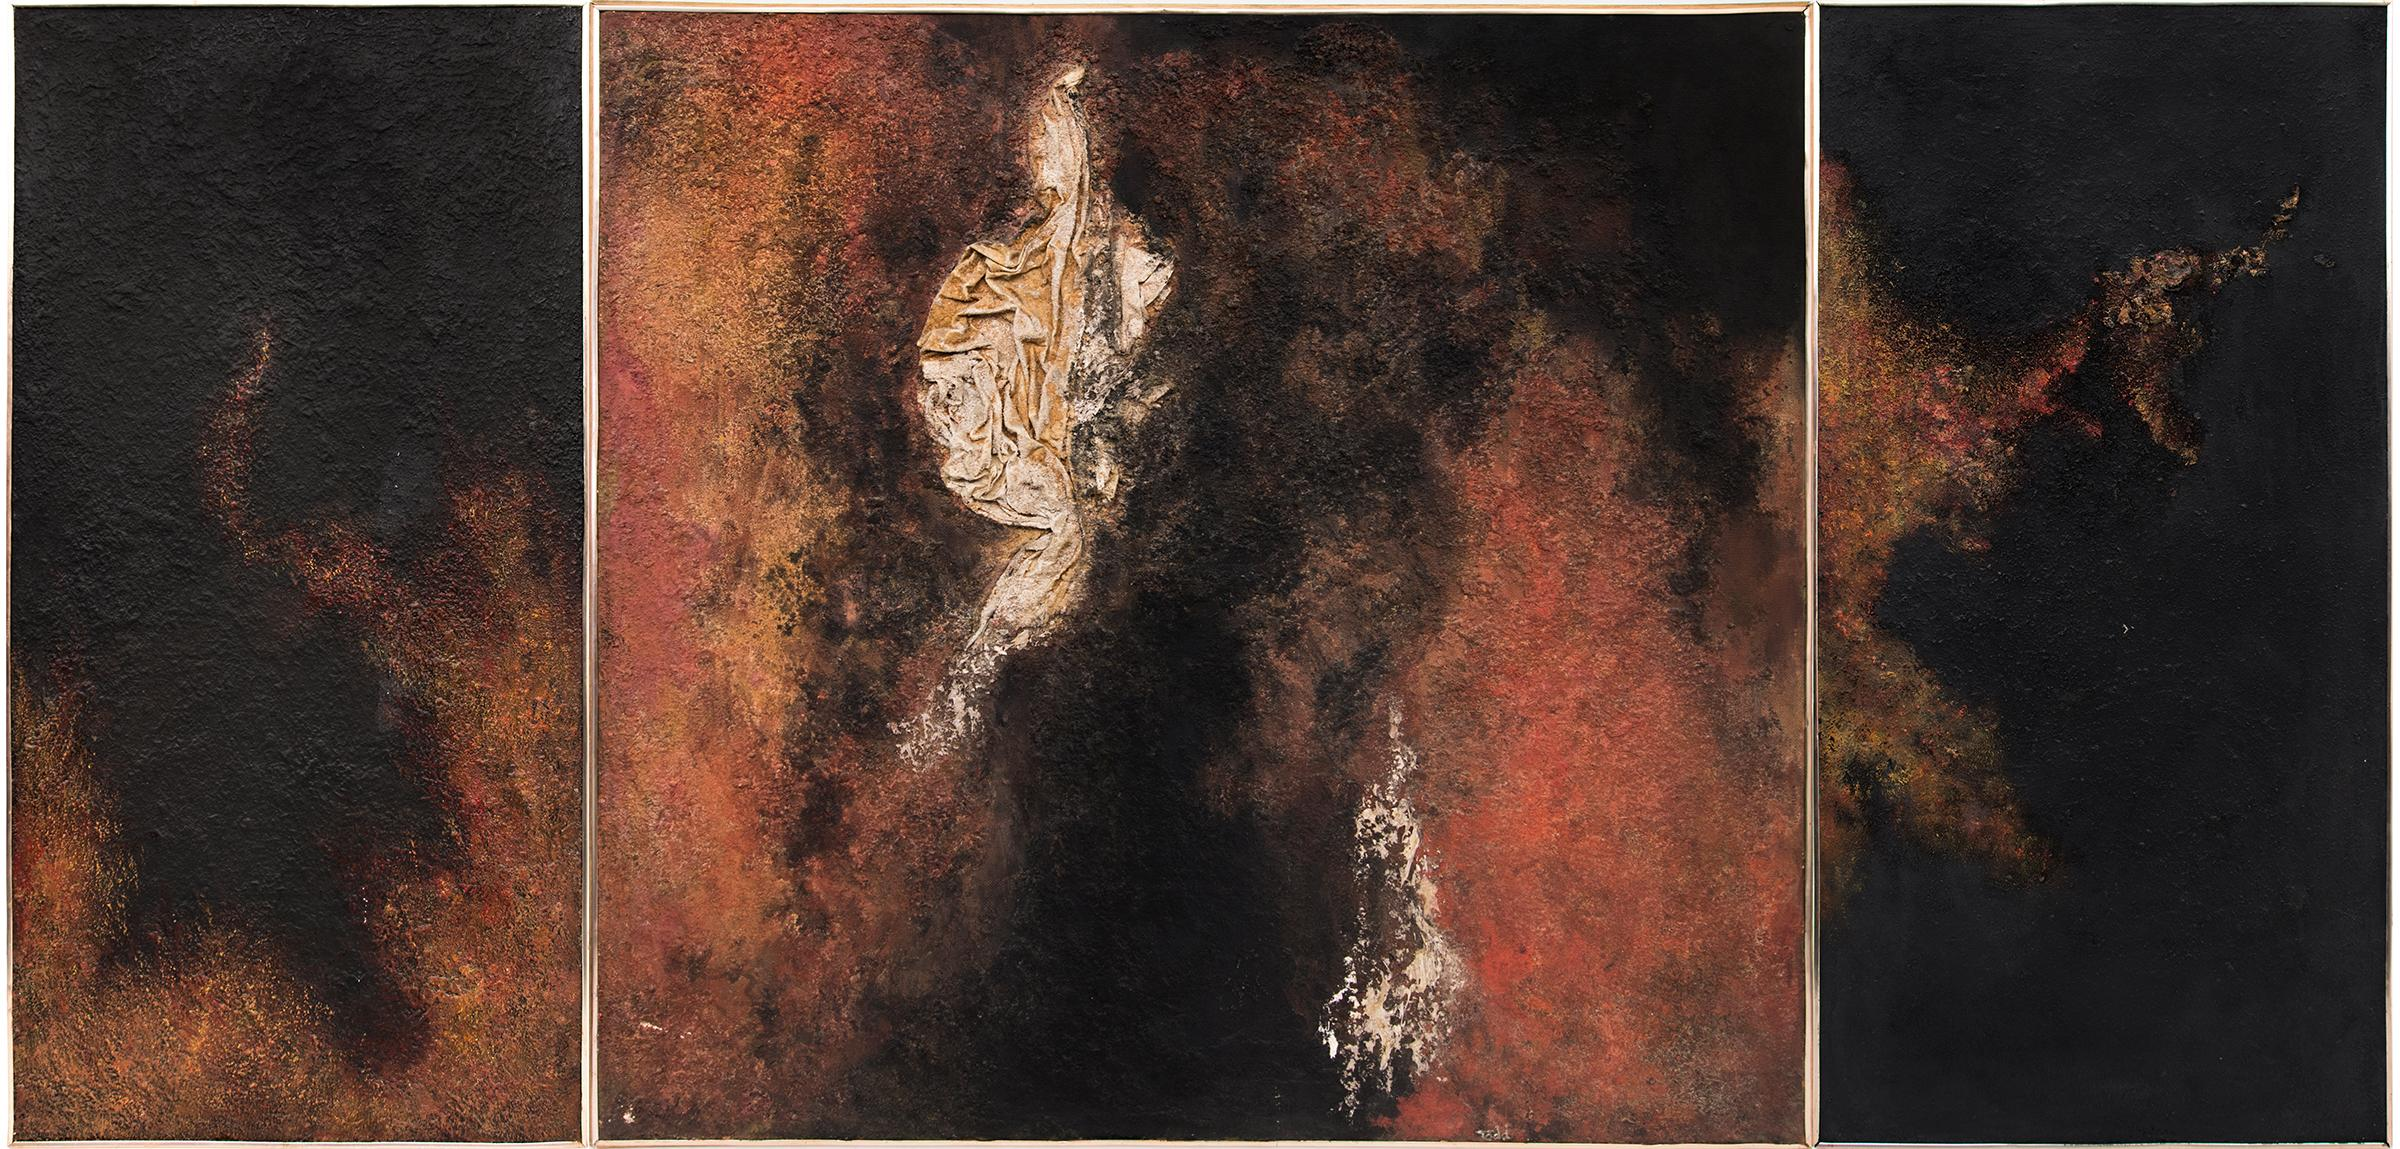 Continuum (Triptych 3 Large Abstract Expressionist Paintings: Red, Black, Gold)